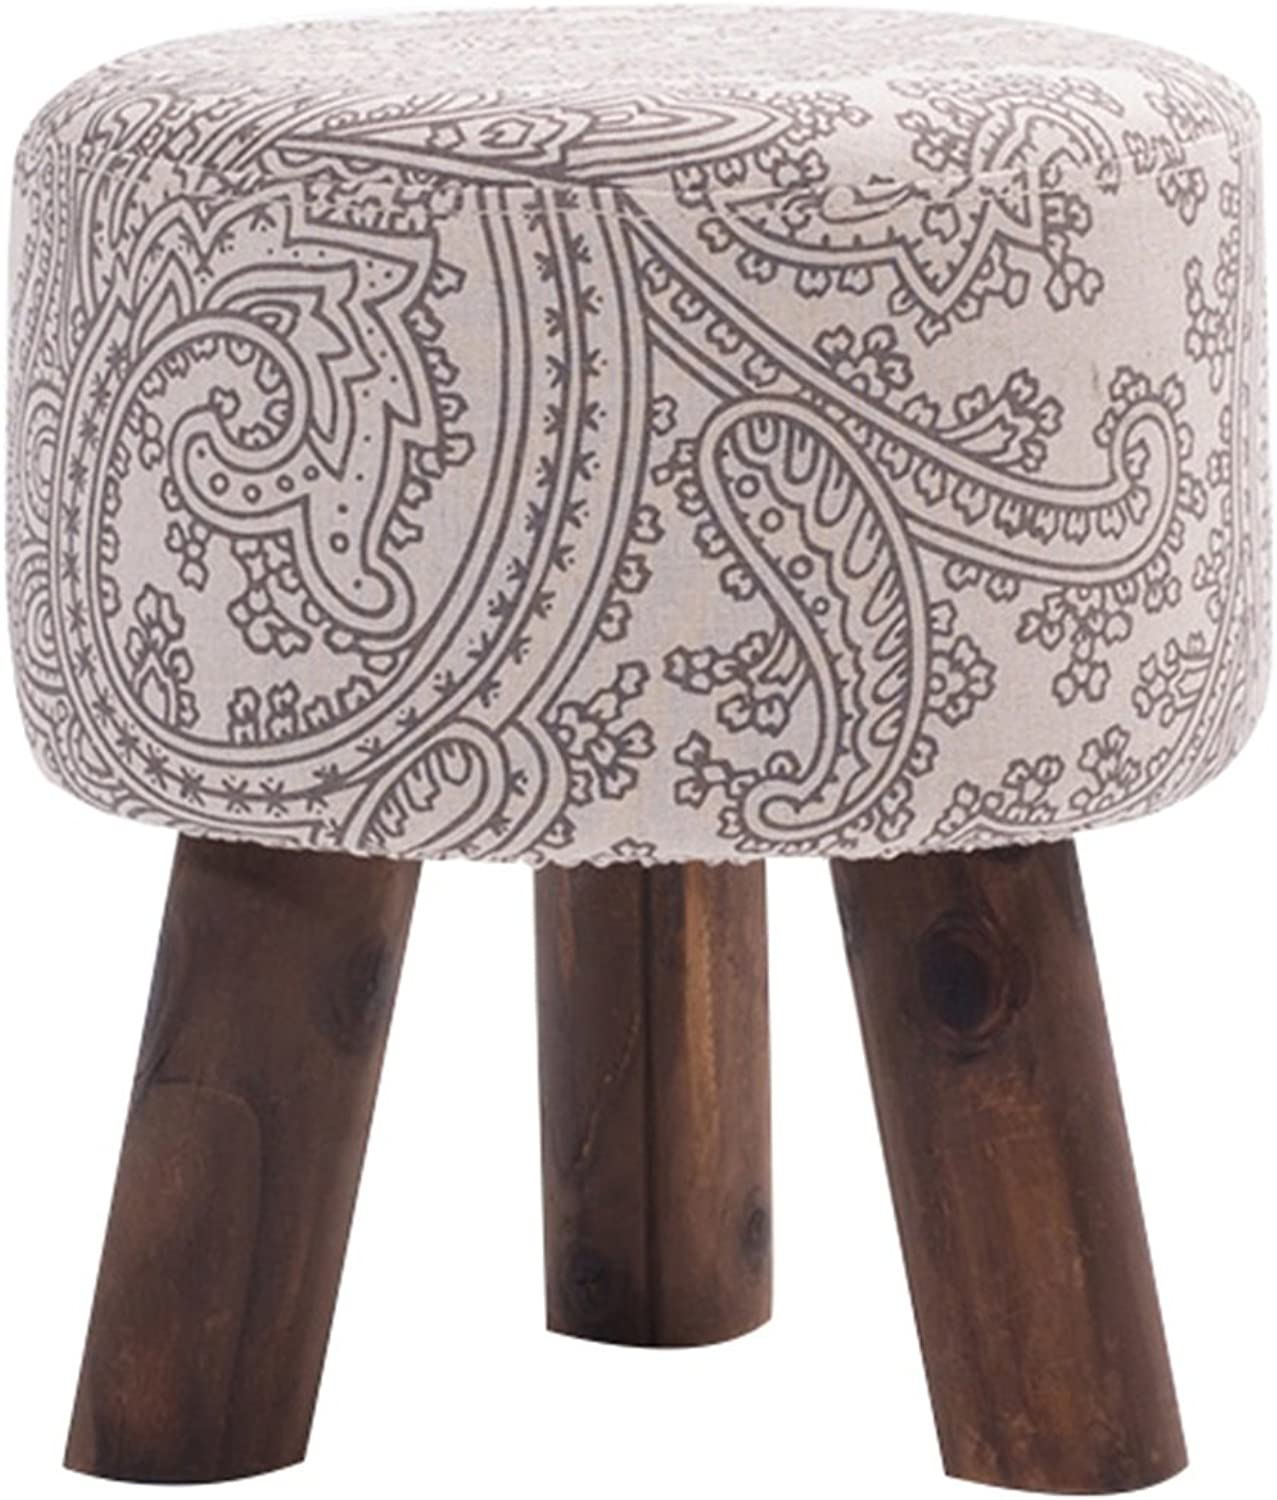 shoes Bench Small Stool Living Room Footstool Cloth Block Sofa Stool Folding Stool Solid Wood shoes Bench Yoga Stool Wearing a shoes Bench Multipurpose Cotton Cloth Versatile Hallway Furniture